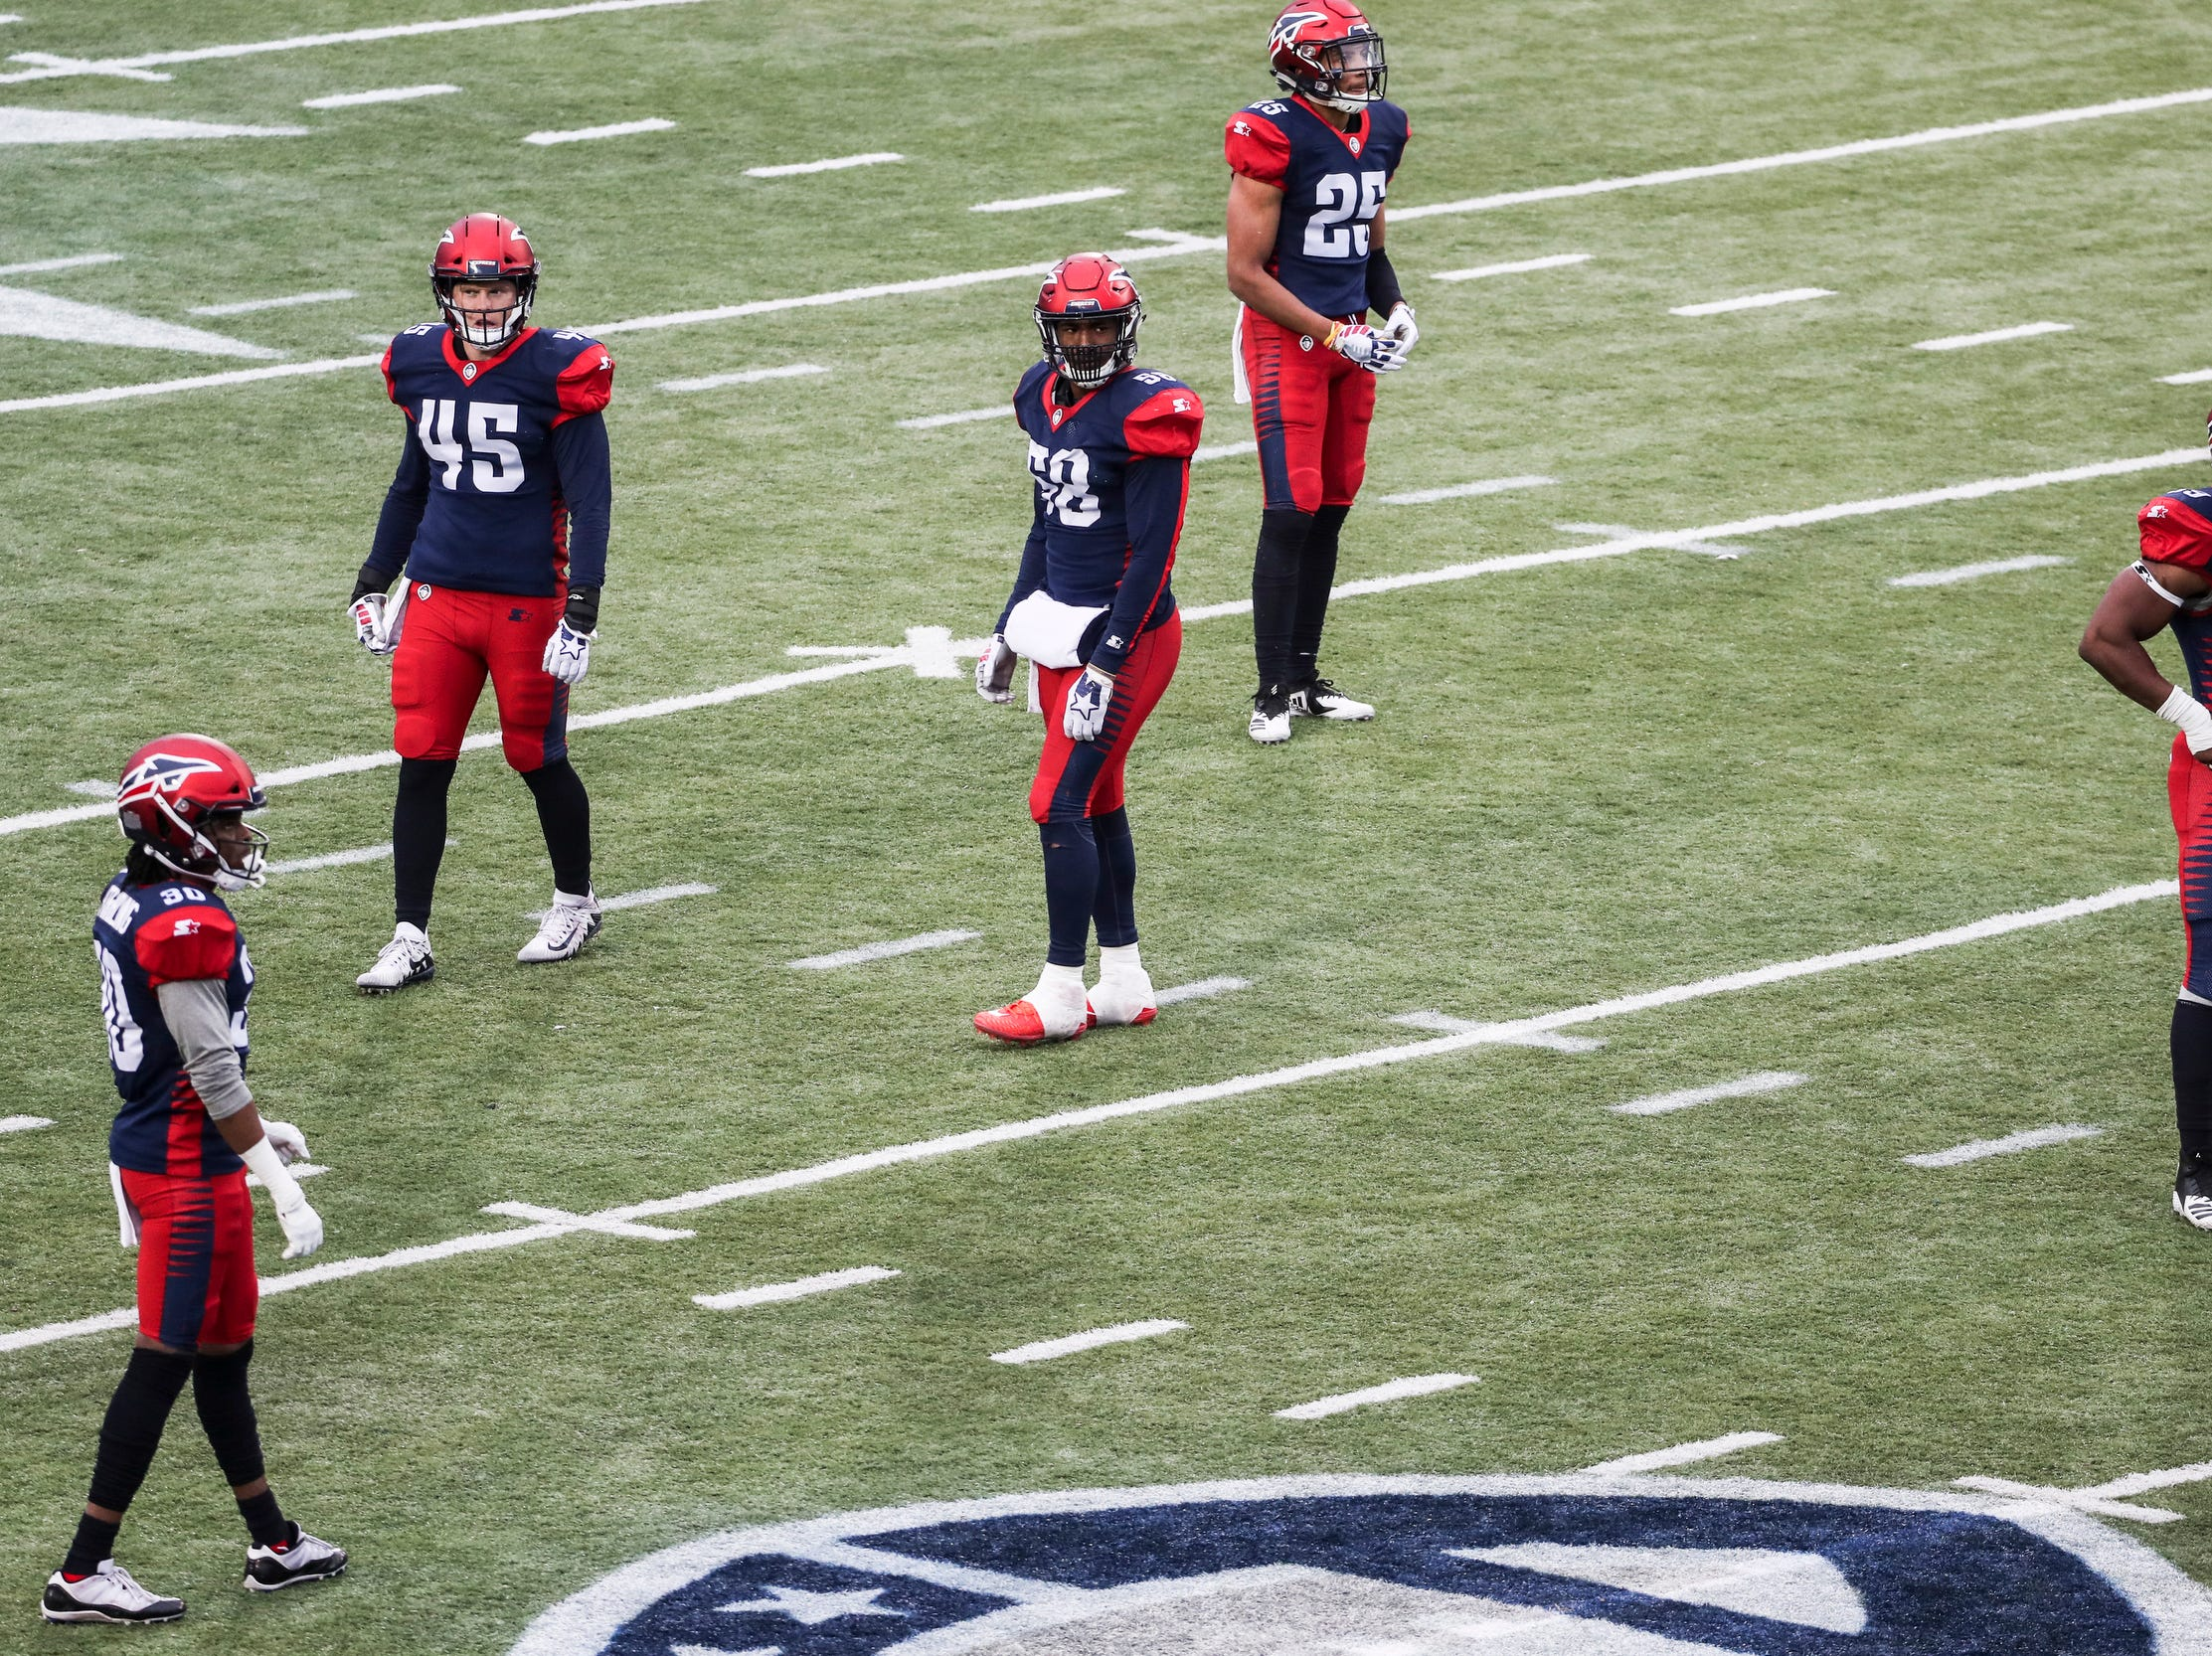 March 02, 2019 - Memphis Express players are seen during Saturday's game against the San Diego Fleet.